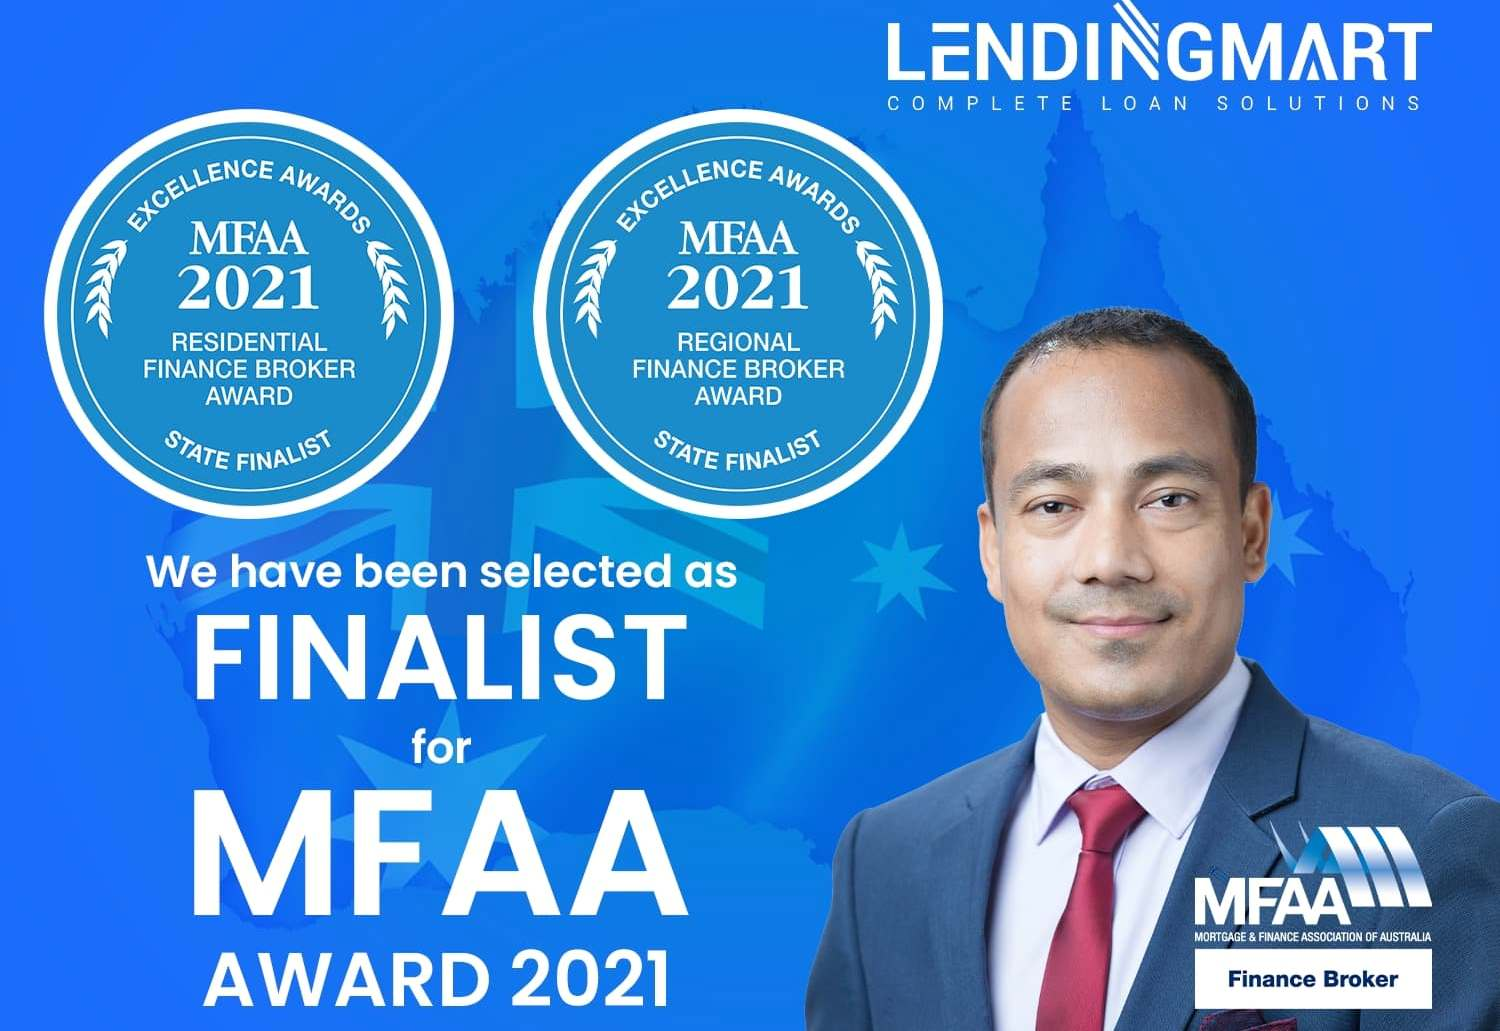 Shree Krishna Dhungana named state finalist at MFAA's Excellence Awards